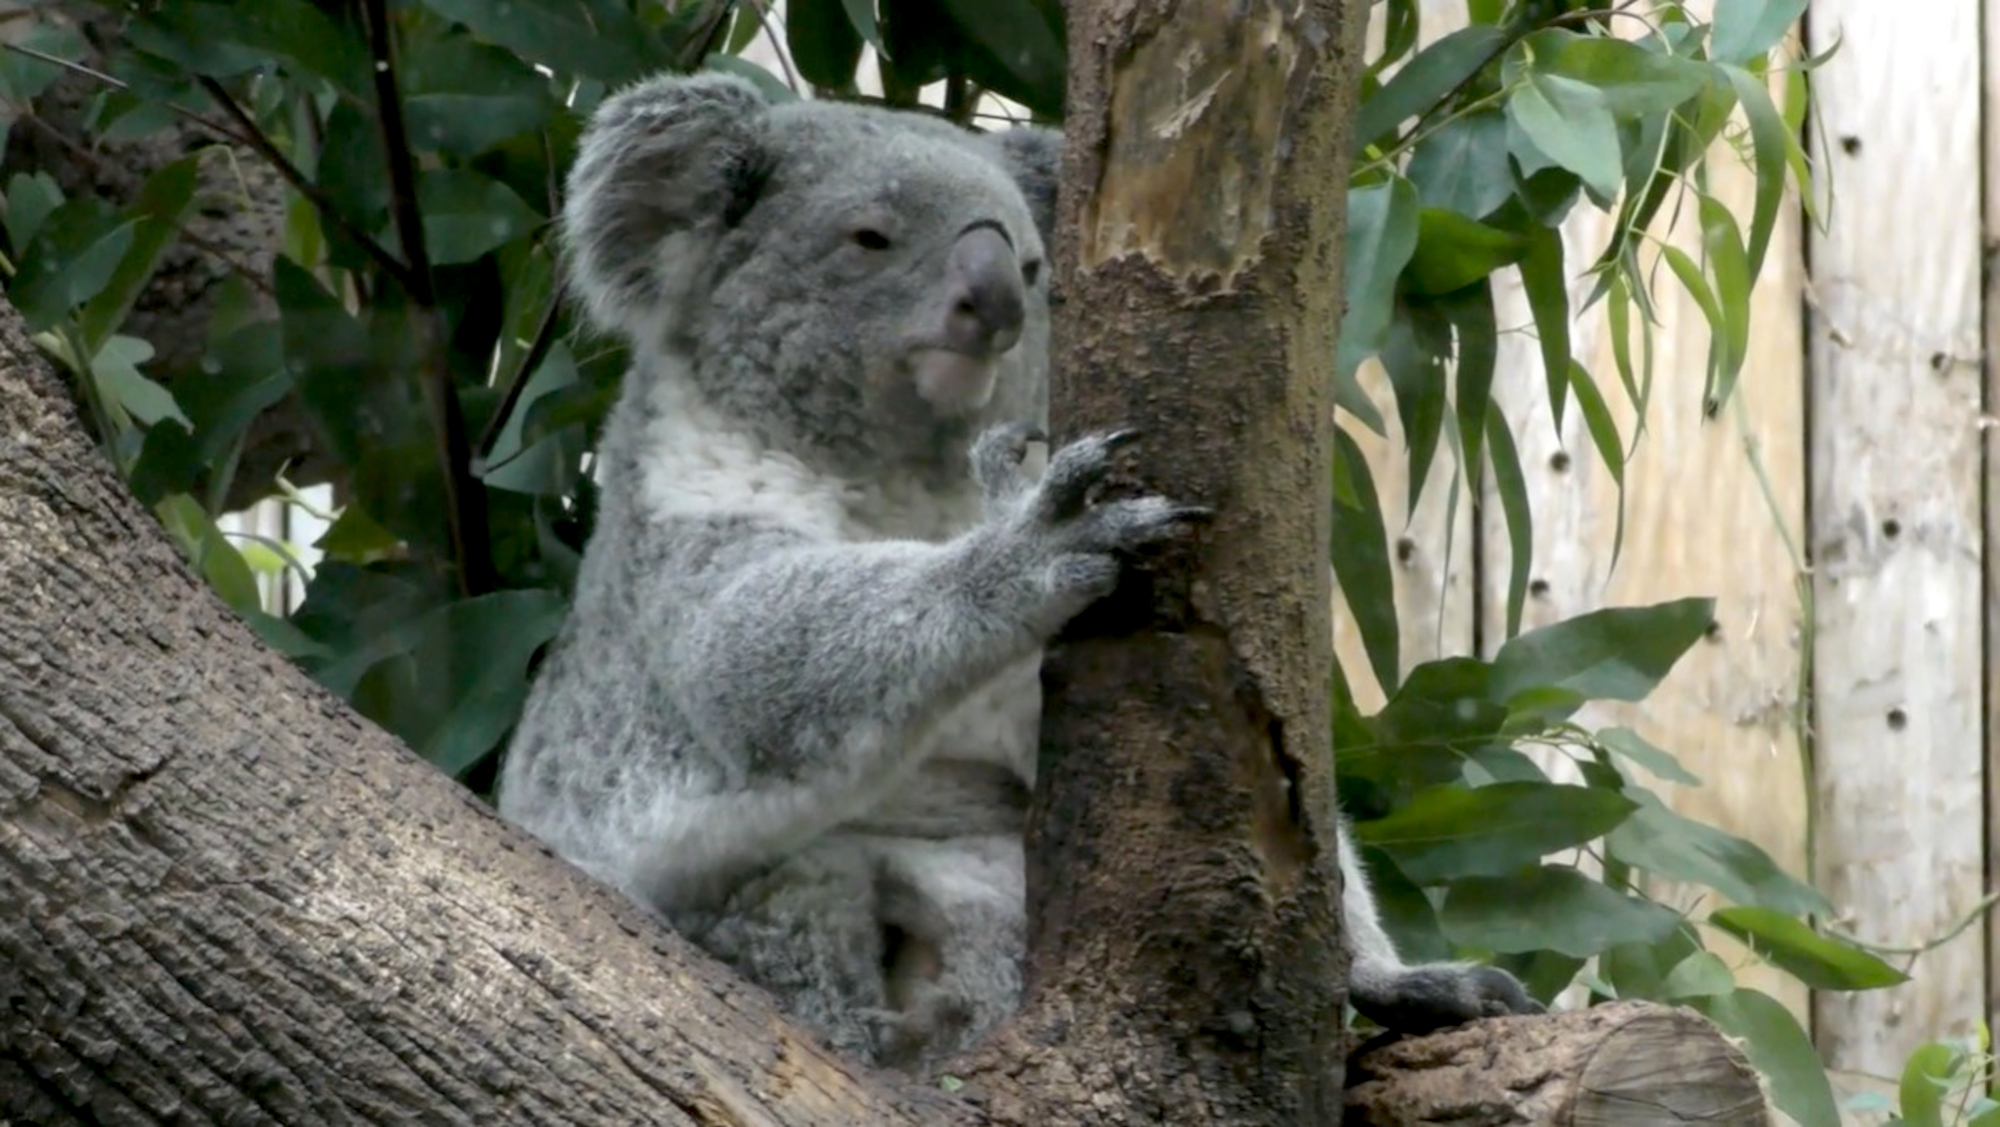 Un-Bear-Ably Cute: Baby Koala Emerges From Mom